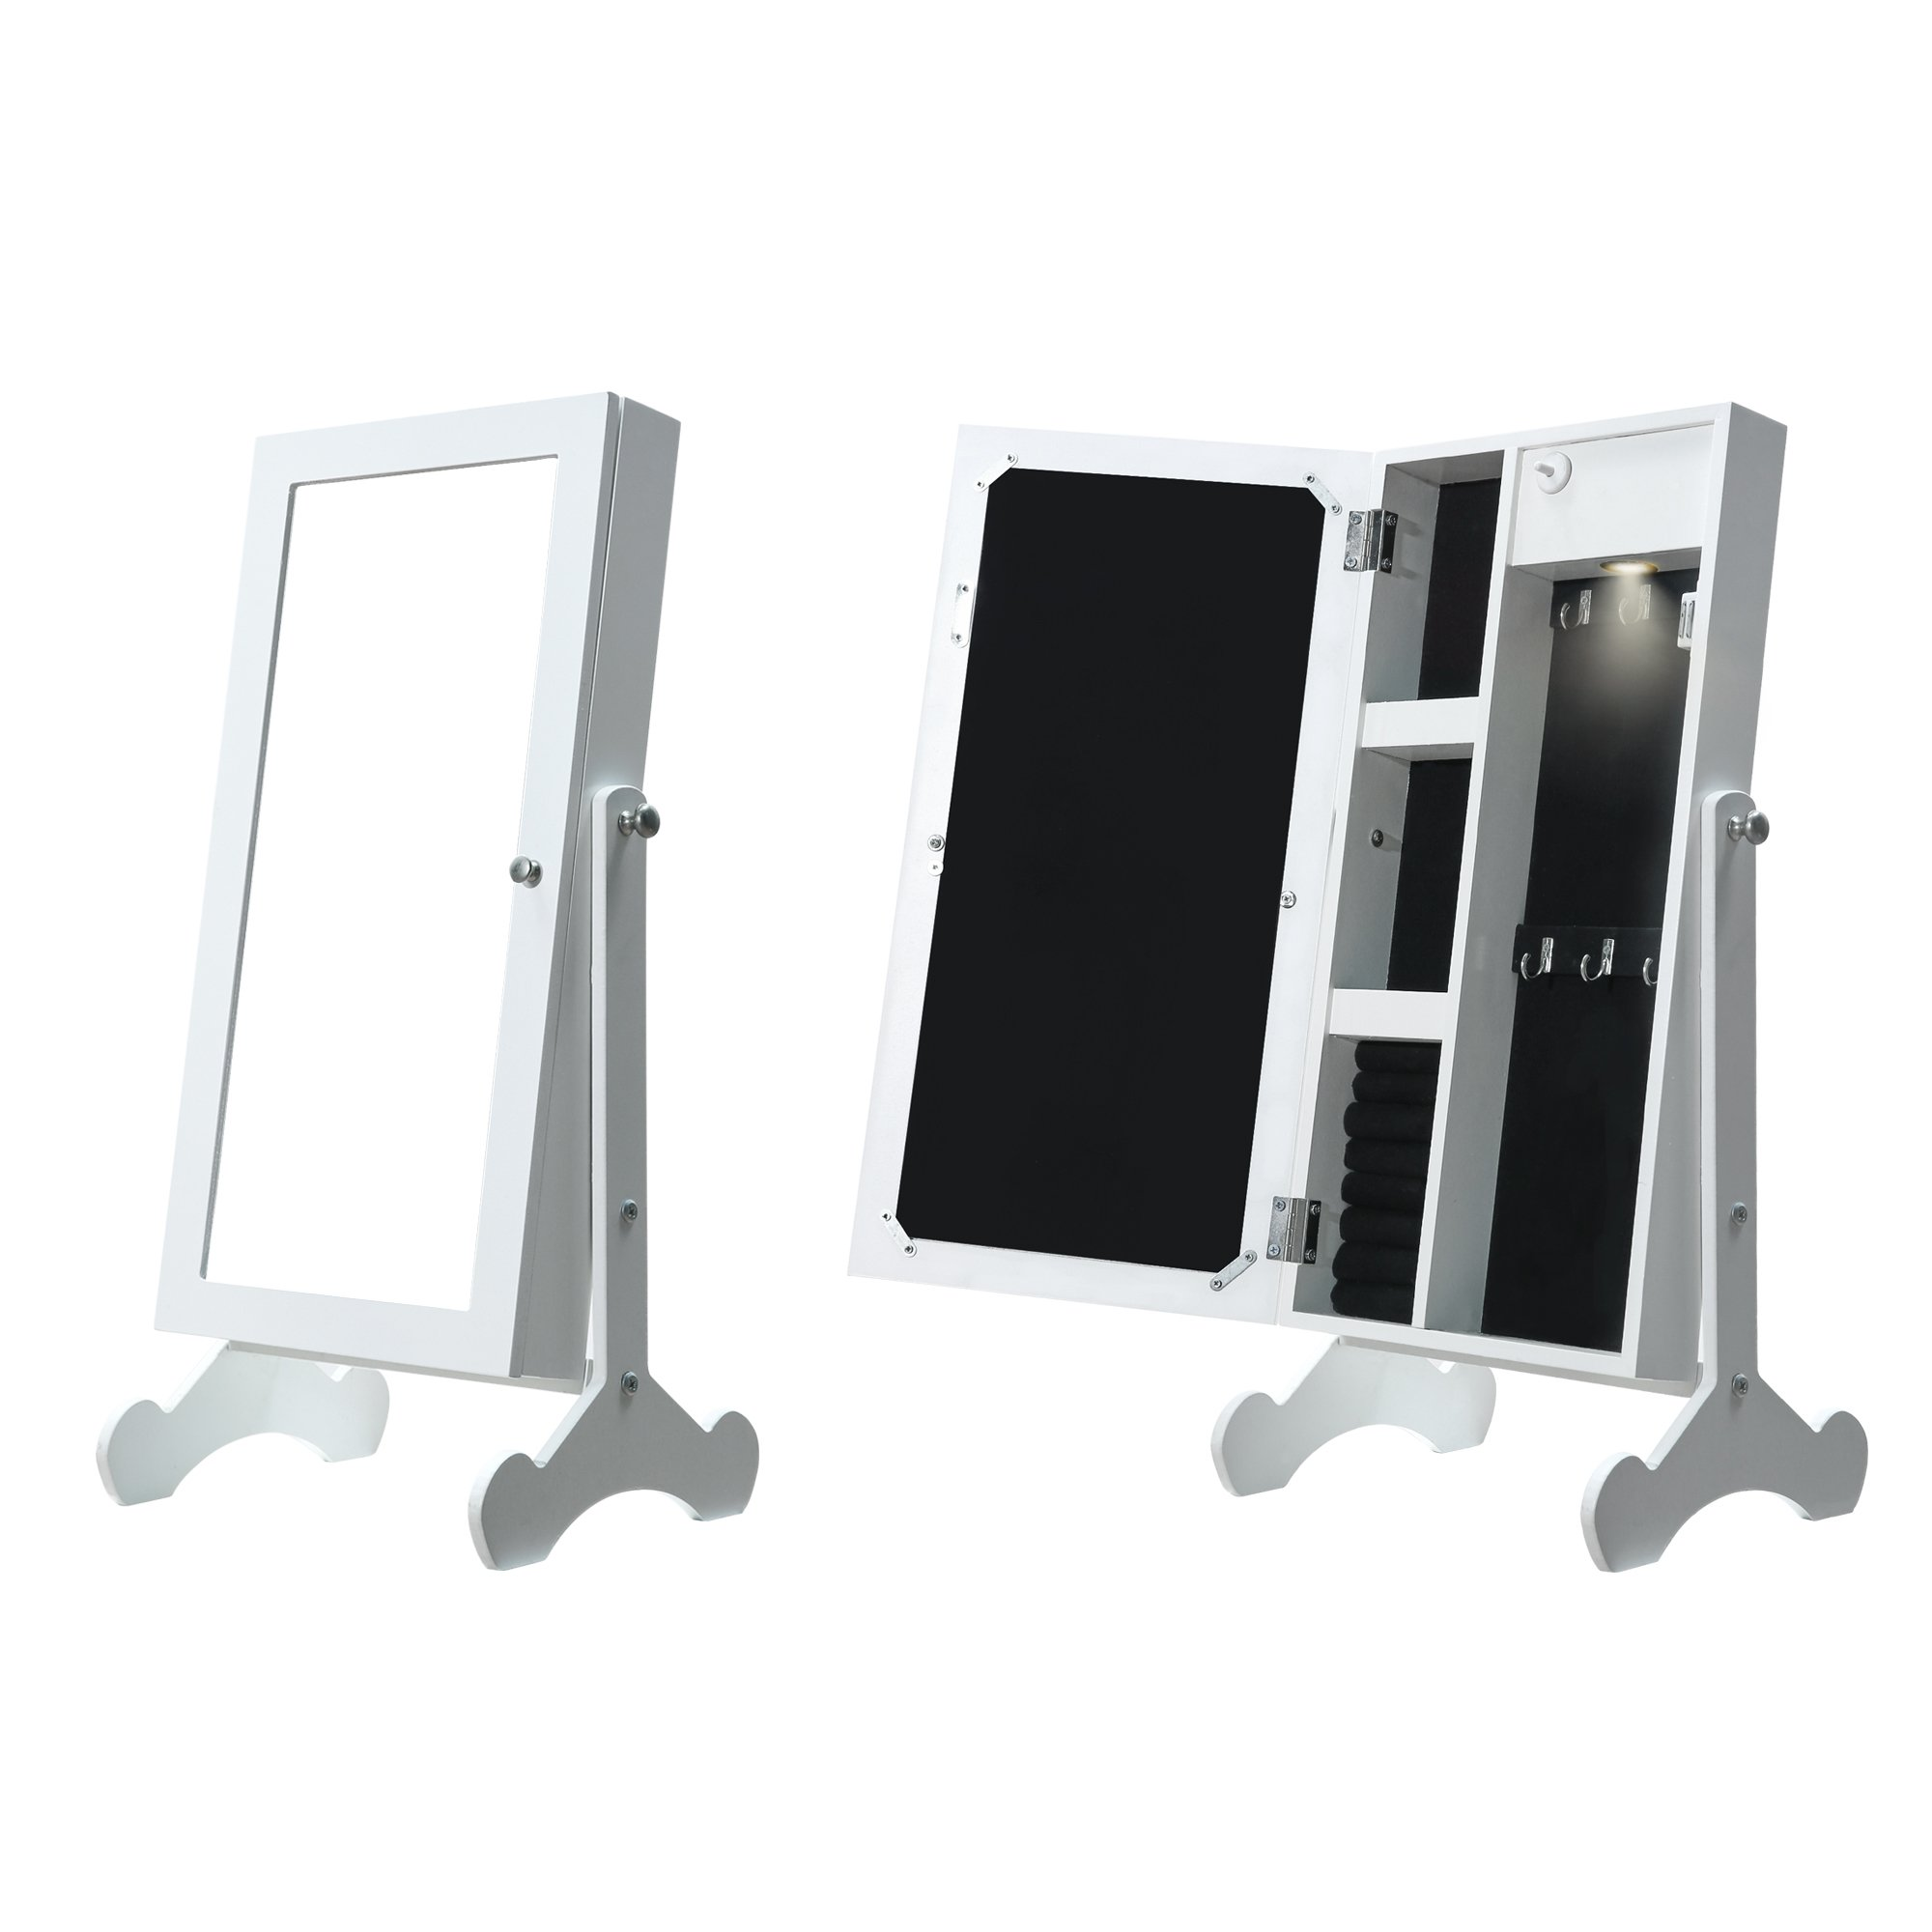 Cloud Mountain Make Up Mirrored Jewelry Cabinet Free Standing Jewelry Armoire Mini Table Tilting Jewelry Organizer, White by Cloud Mountain (Image #1)